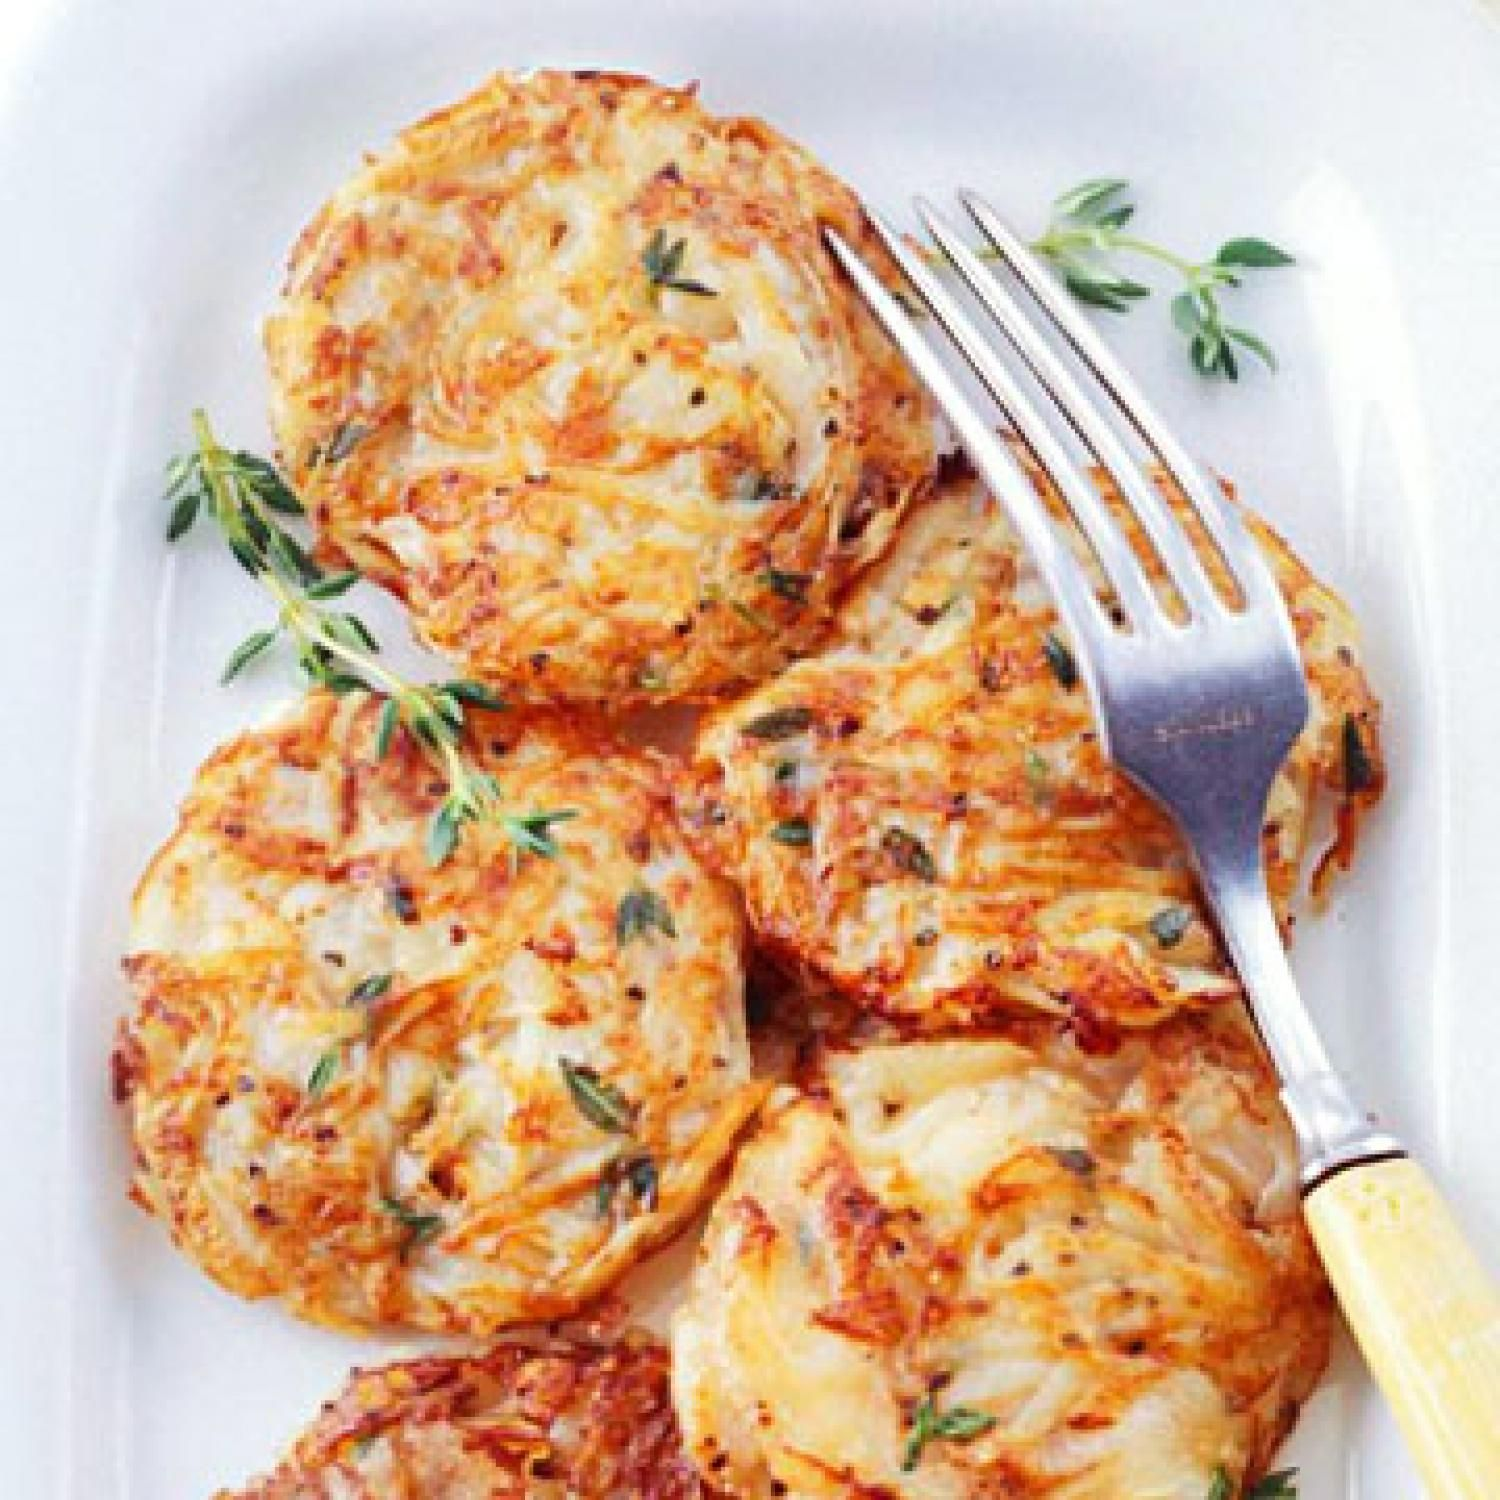 Low carb breakfast recipes hash browns potato cakes and low carb breakfast recipes forumfinder Choice Image